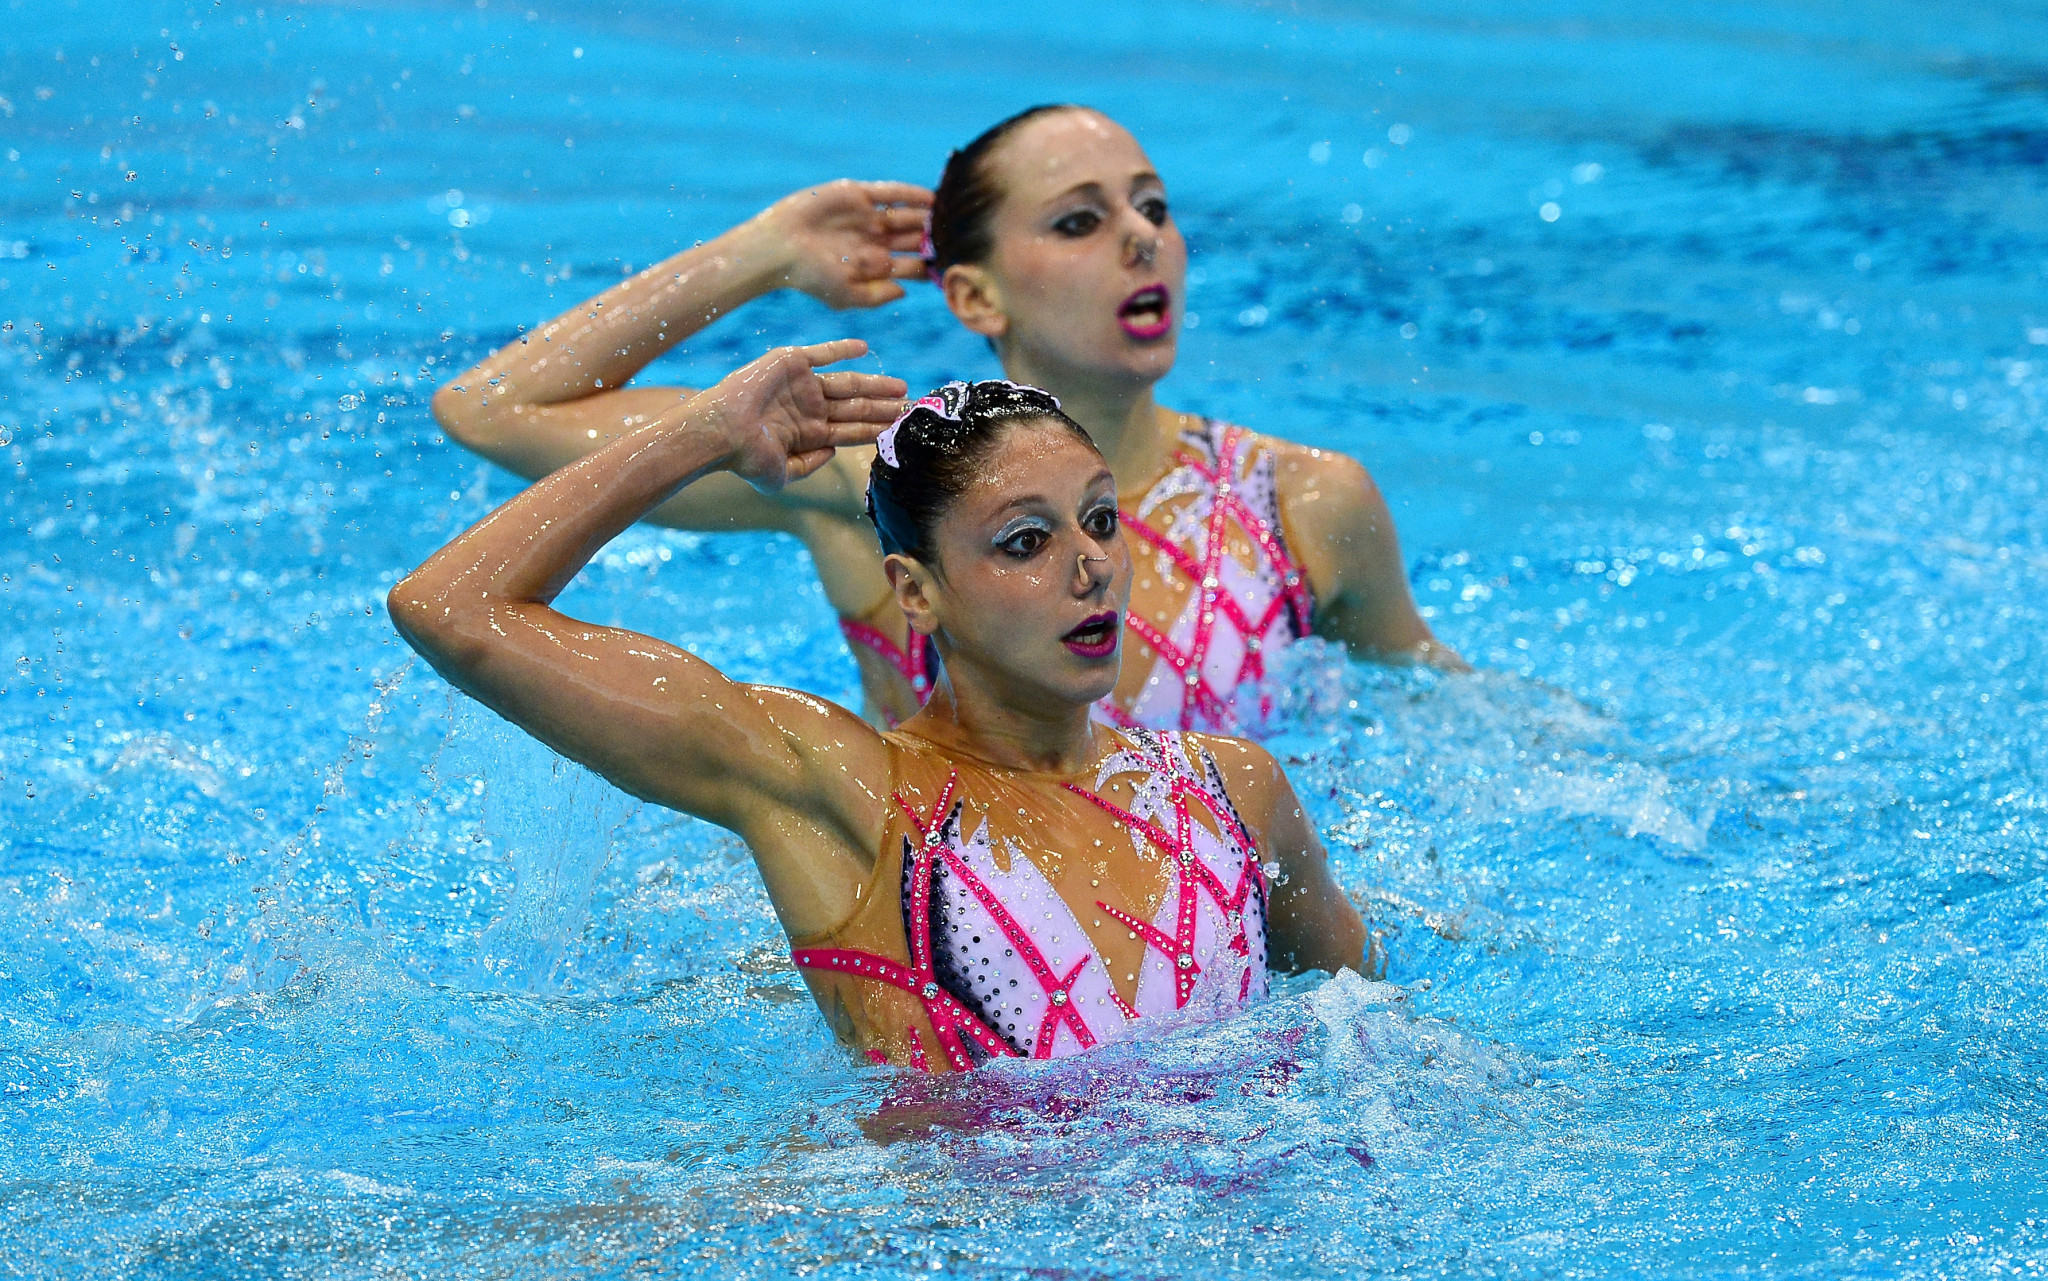 Linda Cerruti and Constanza Ferro triumphed in the duet technical event ©Getty Images